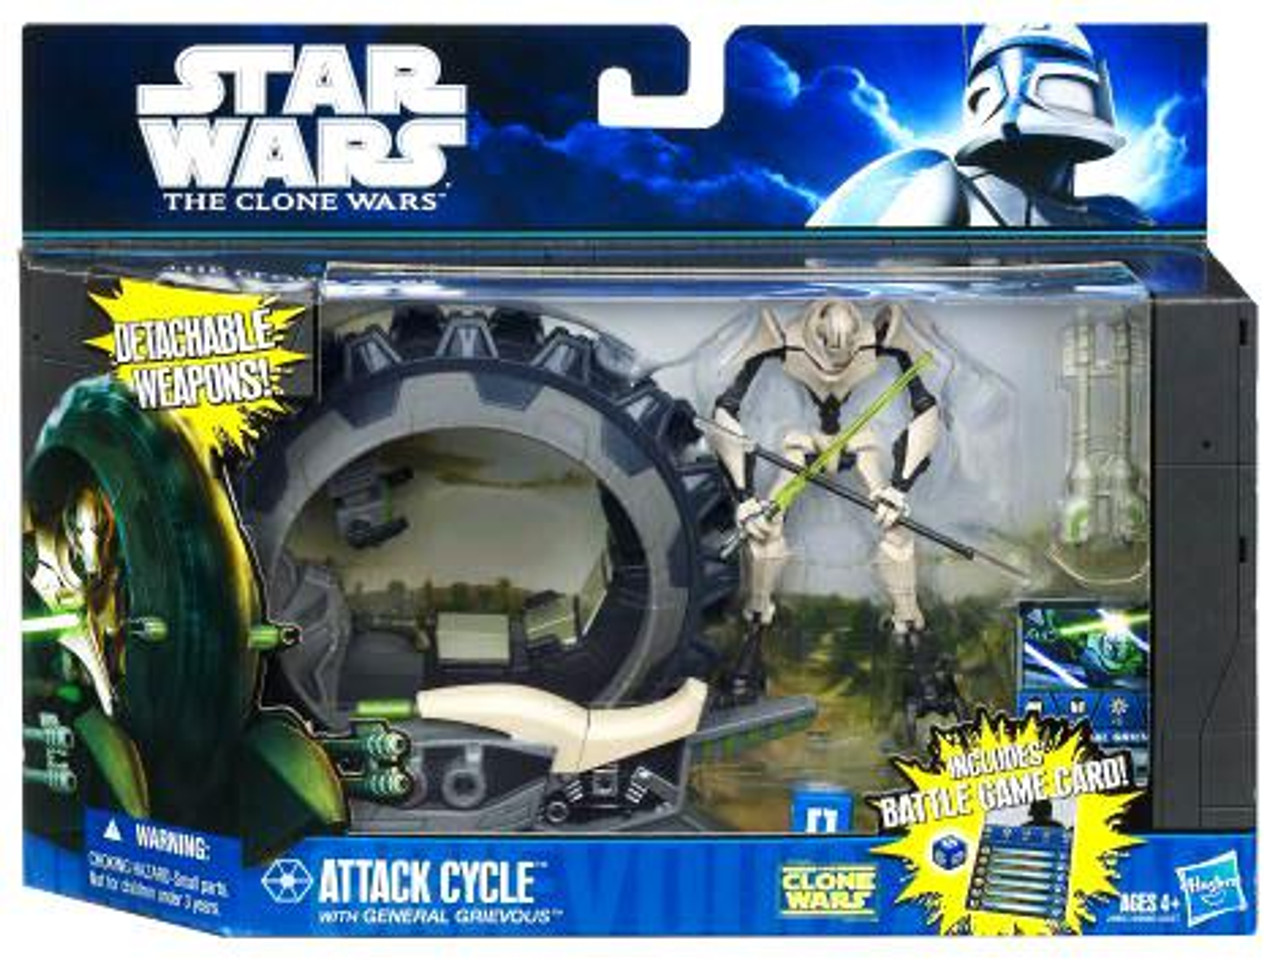 Star Wars The Clone Wars Attack Cycle With General Grievous 3 75 Vehicle Action Figure Hasbro Toys Toywiz